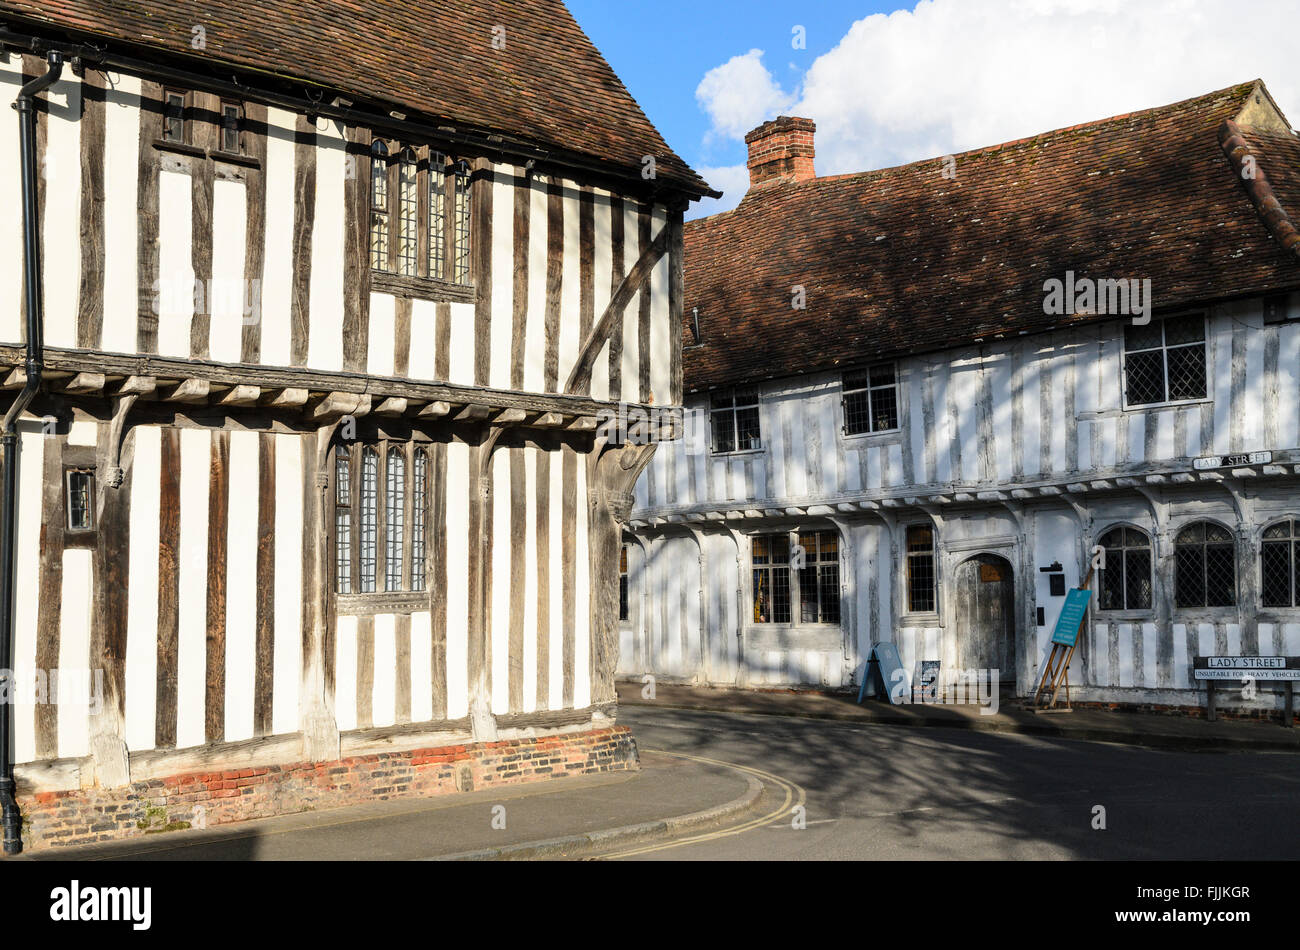 Traditional half-timbered medieval builidings in Lavenham, Suffolk, England, UK. Stock Photo